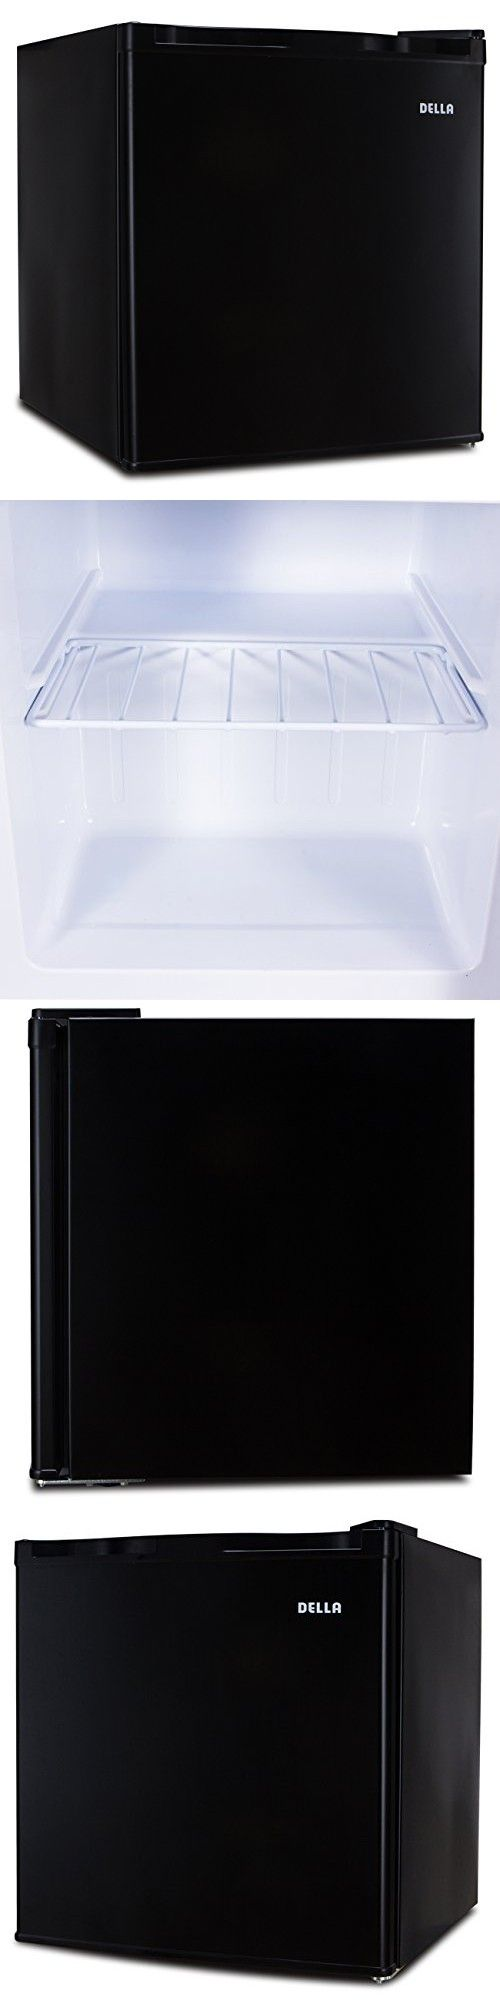 Vertical Freezers For Sale Best 20 Upright Freezer Ideas On Pinterest Deep Freezer